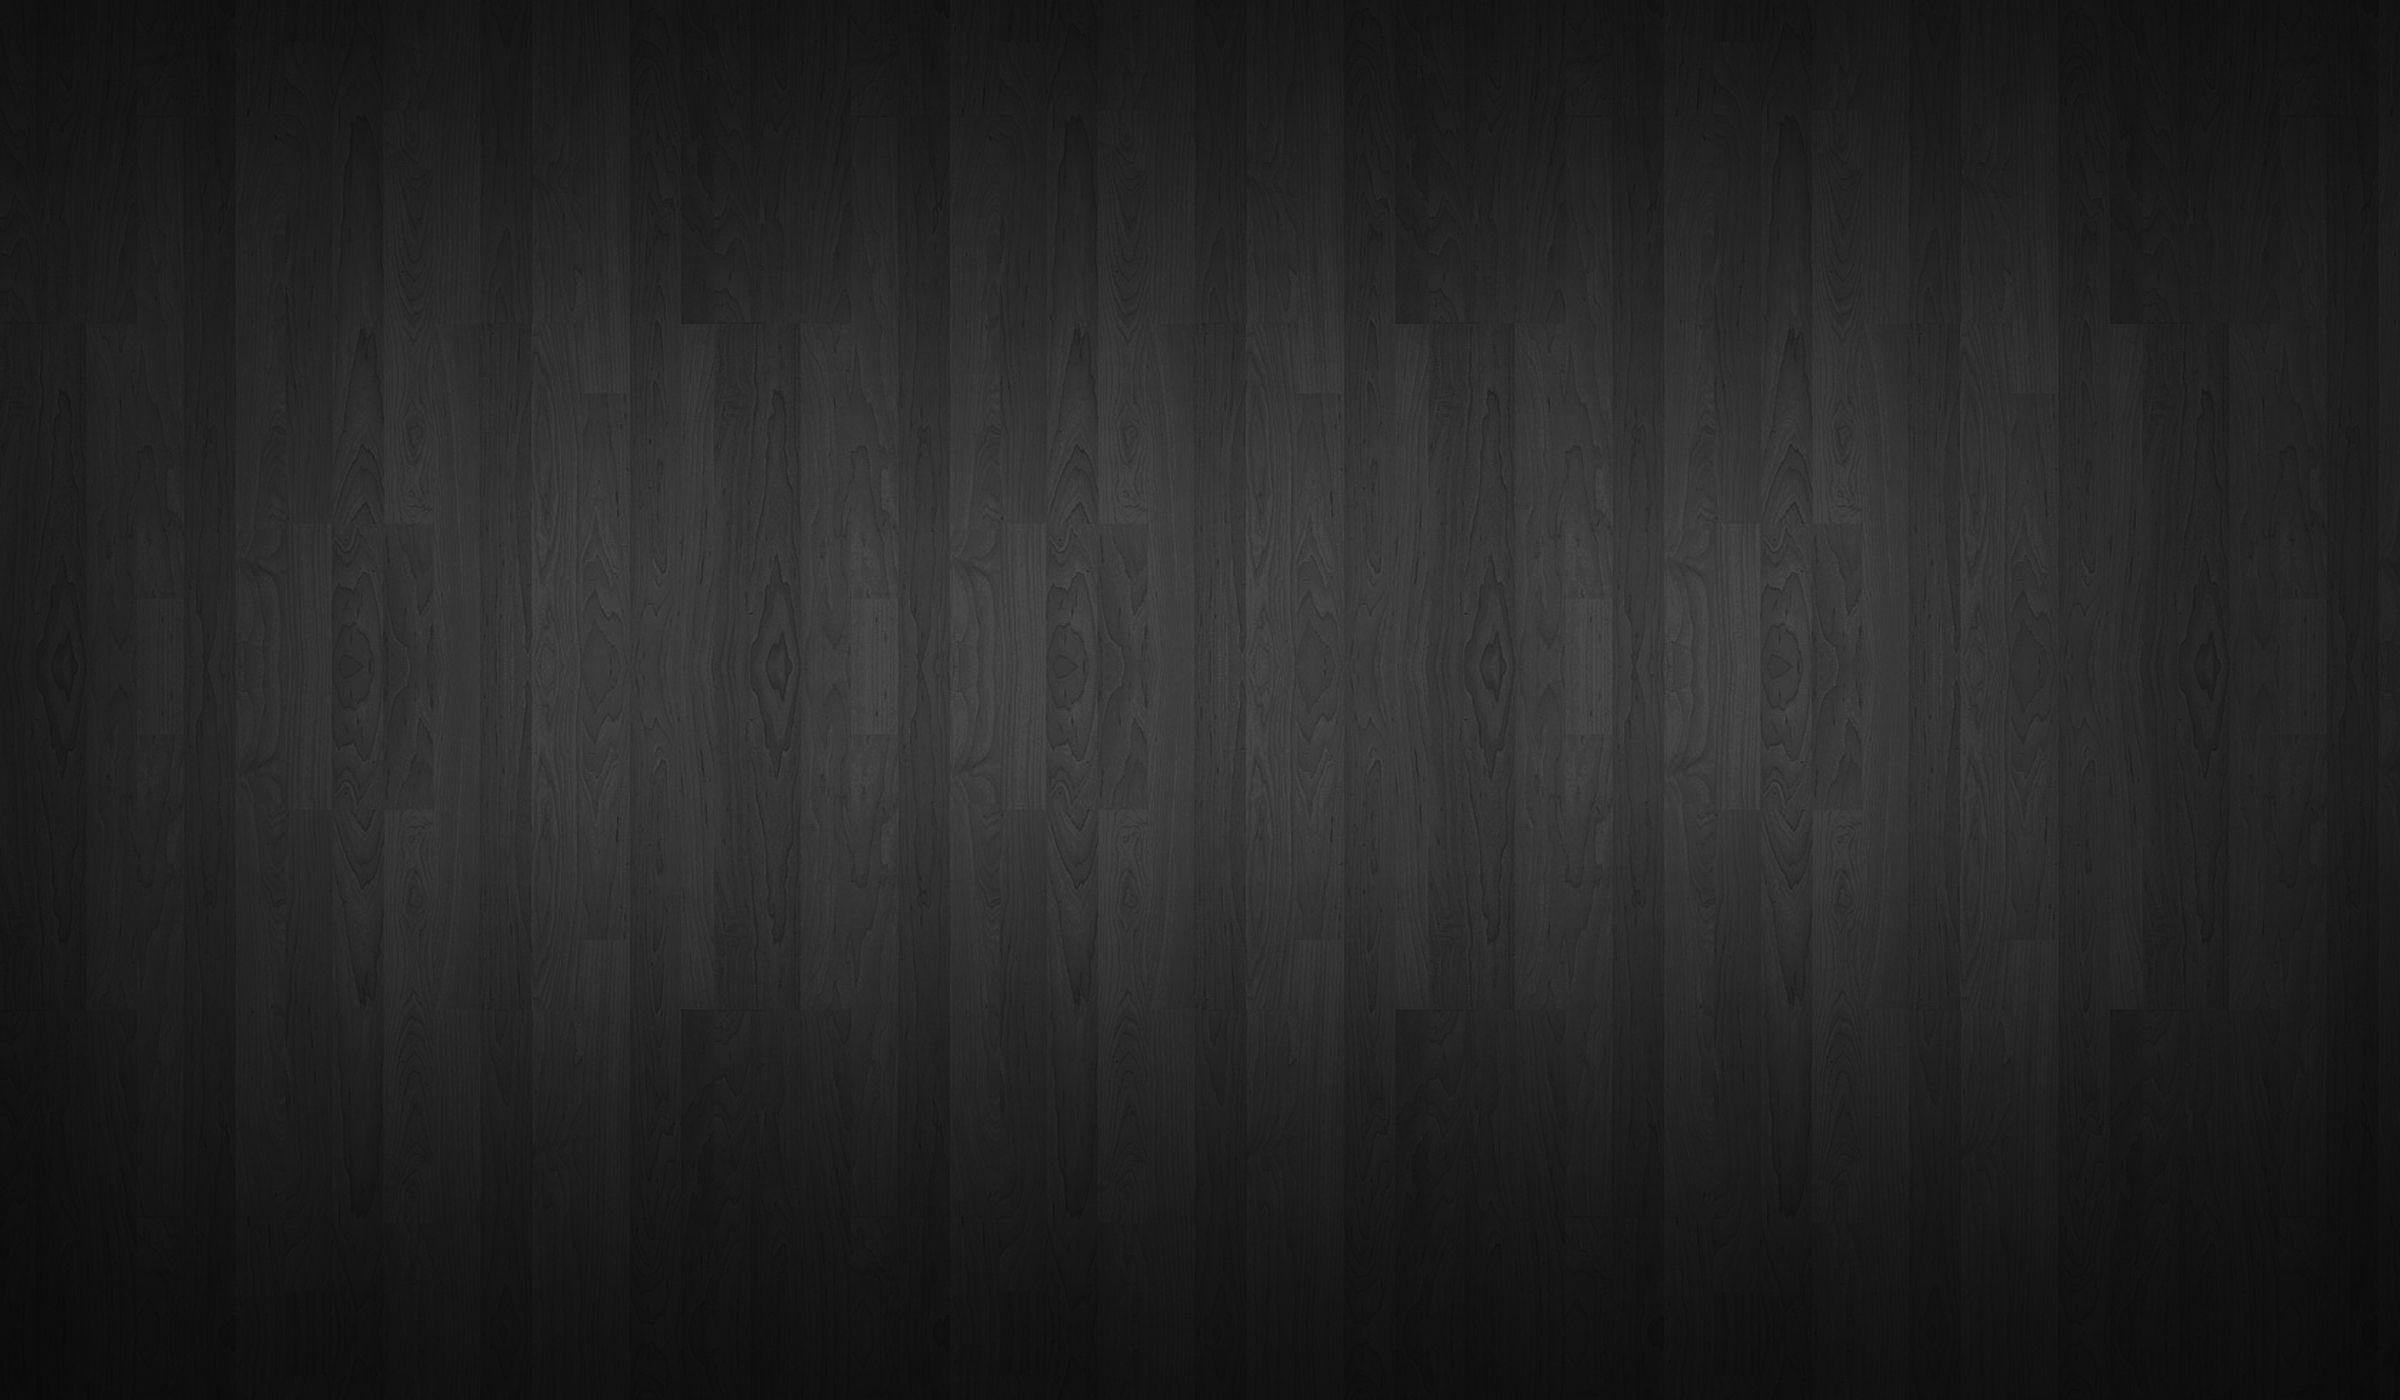 Black Gradient Wallpapers 2400x1400